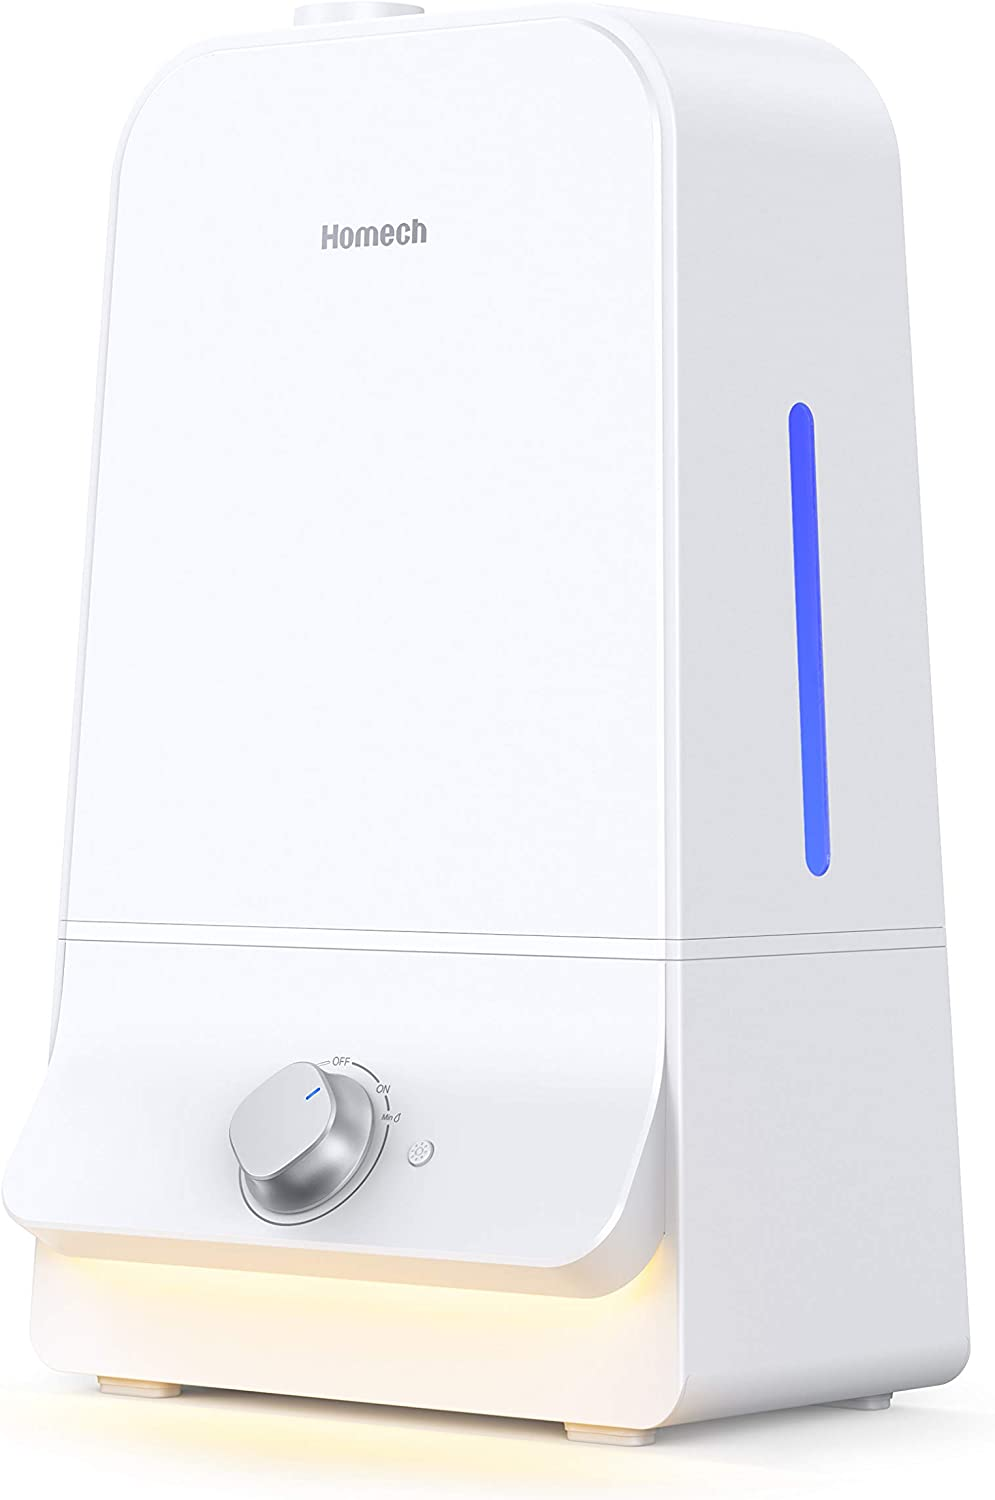 Homech 6L Cool Mist Humidifiers Quiet Ultrasonic Humidifier 100 Hours, Easy to Clean, for Nursery Babies Room Large bedroom LivingGuitarRoom 360° Nozzle ,Tank-Removal and Waterless Auto Shut-Off